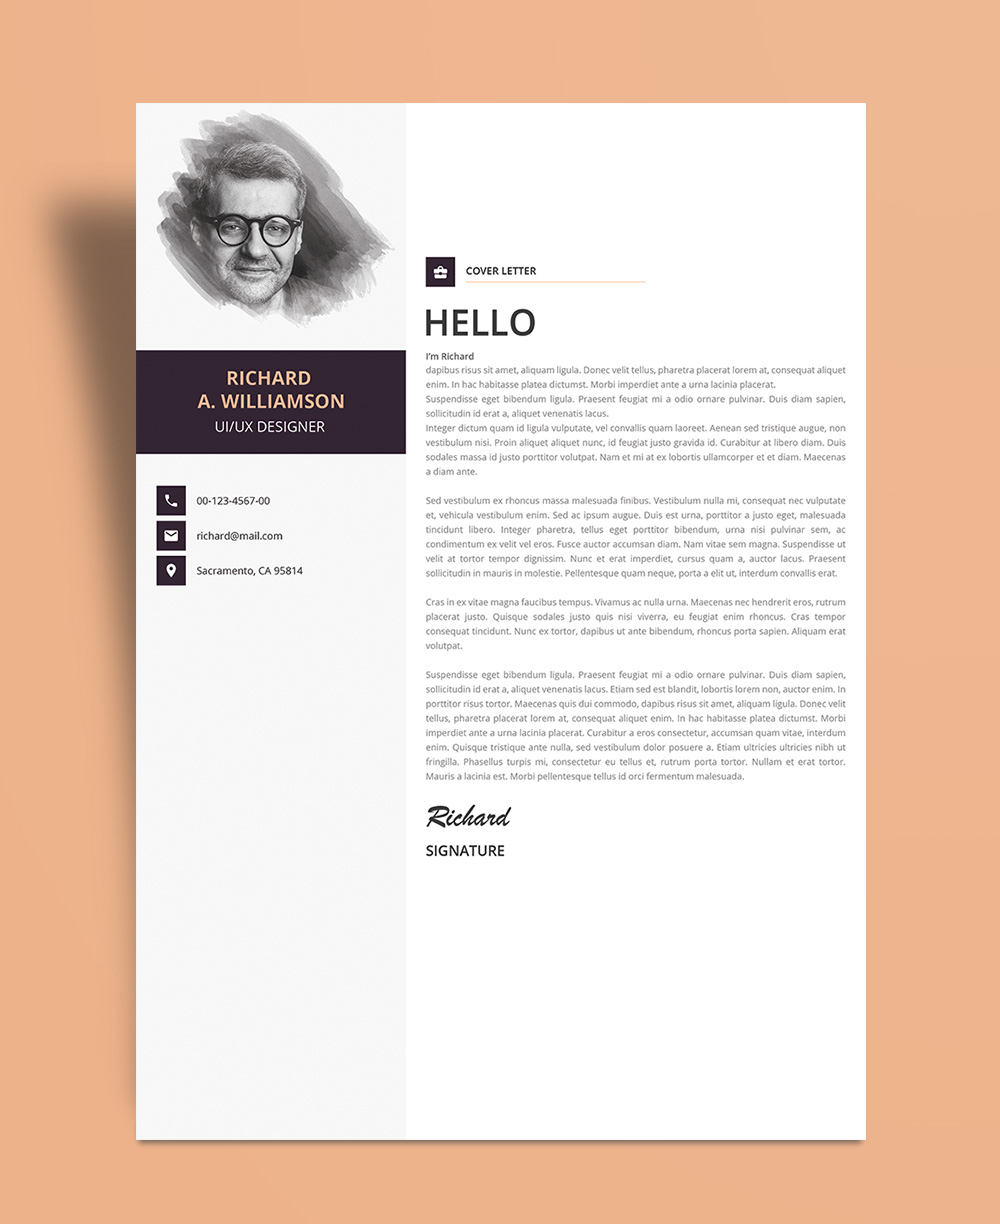 Creative Cover Letter Design  World of Reference